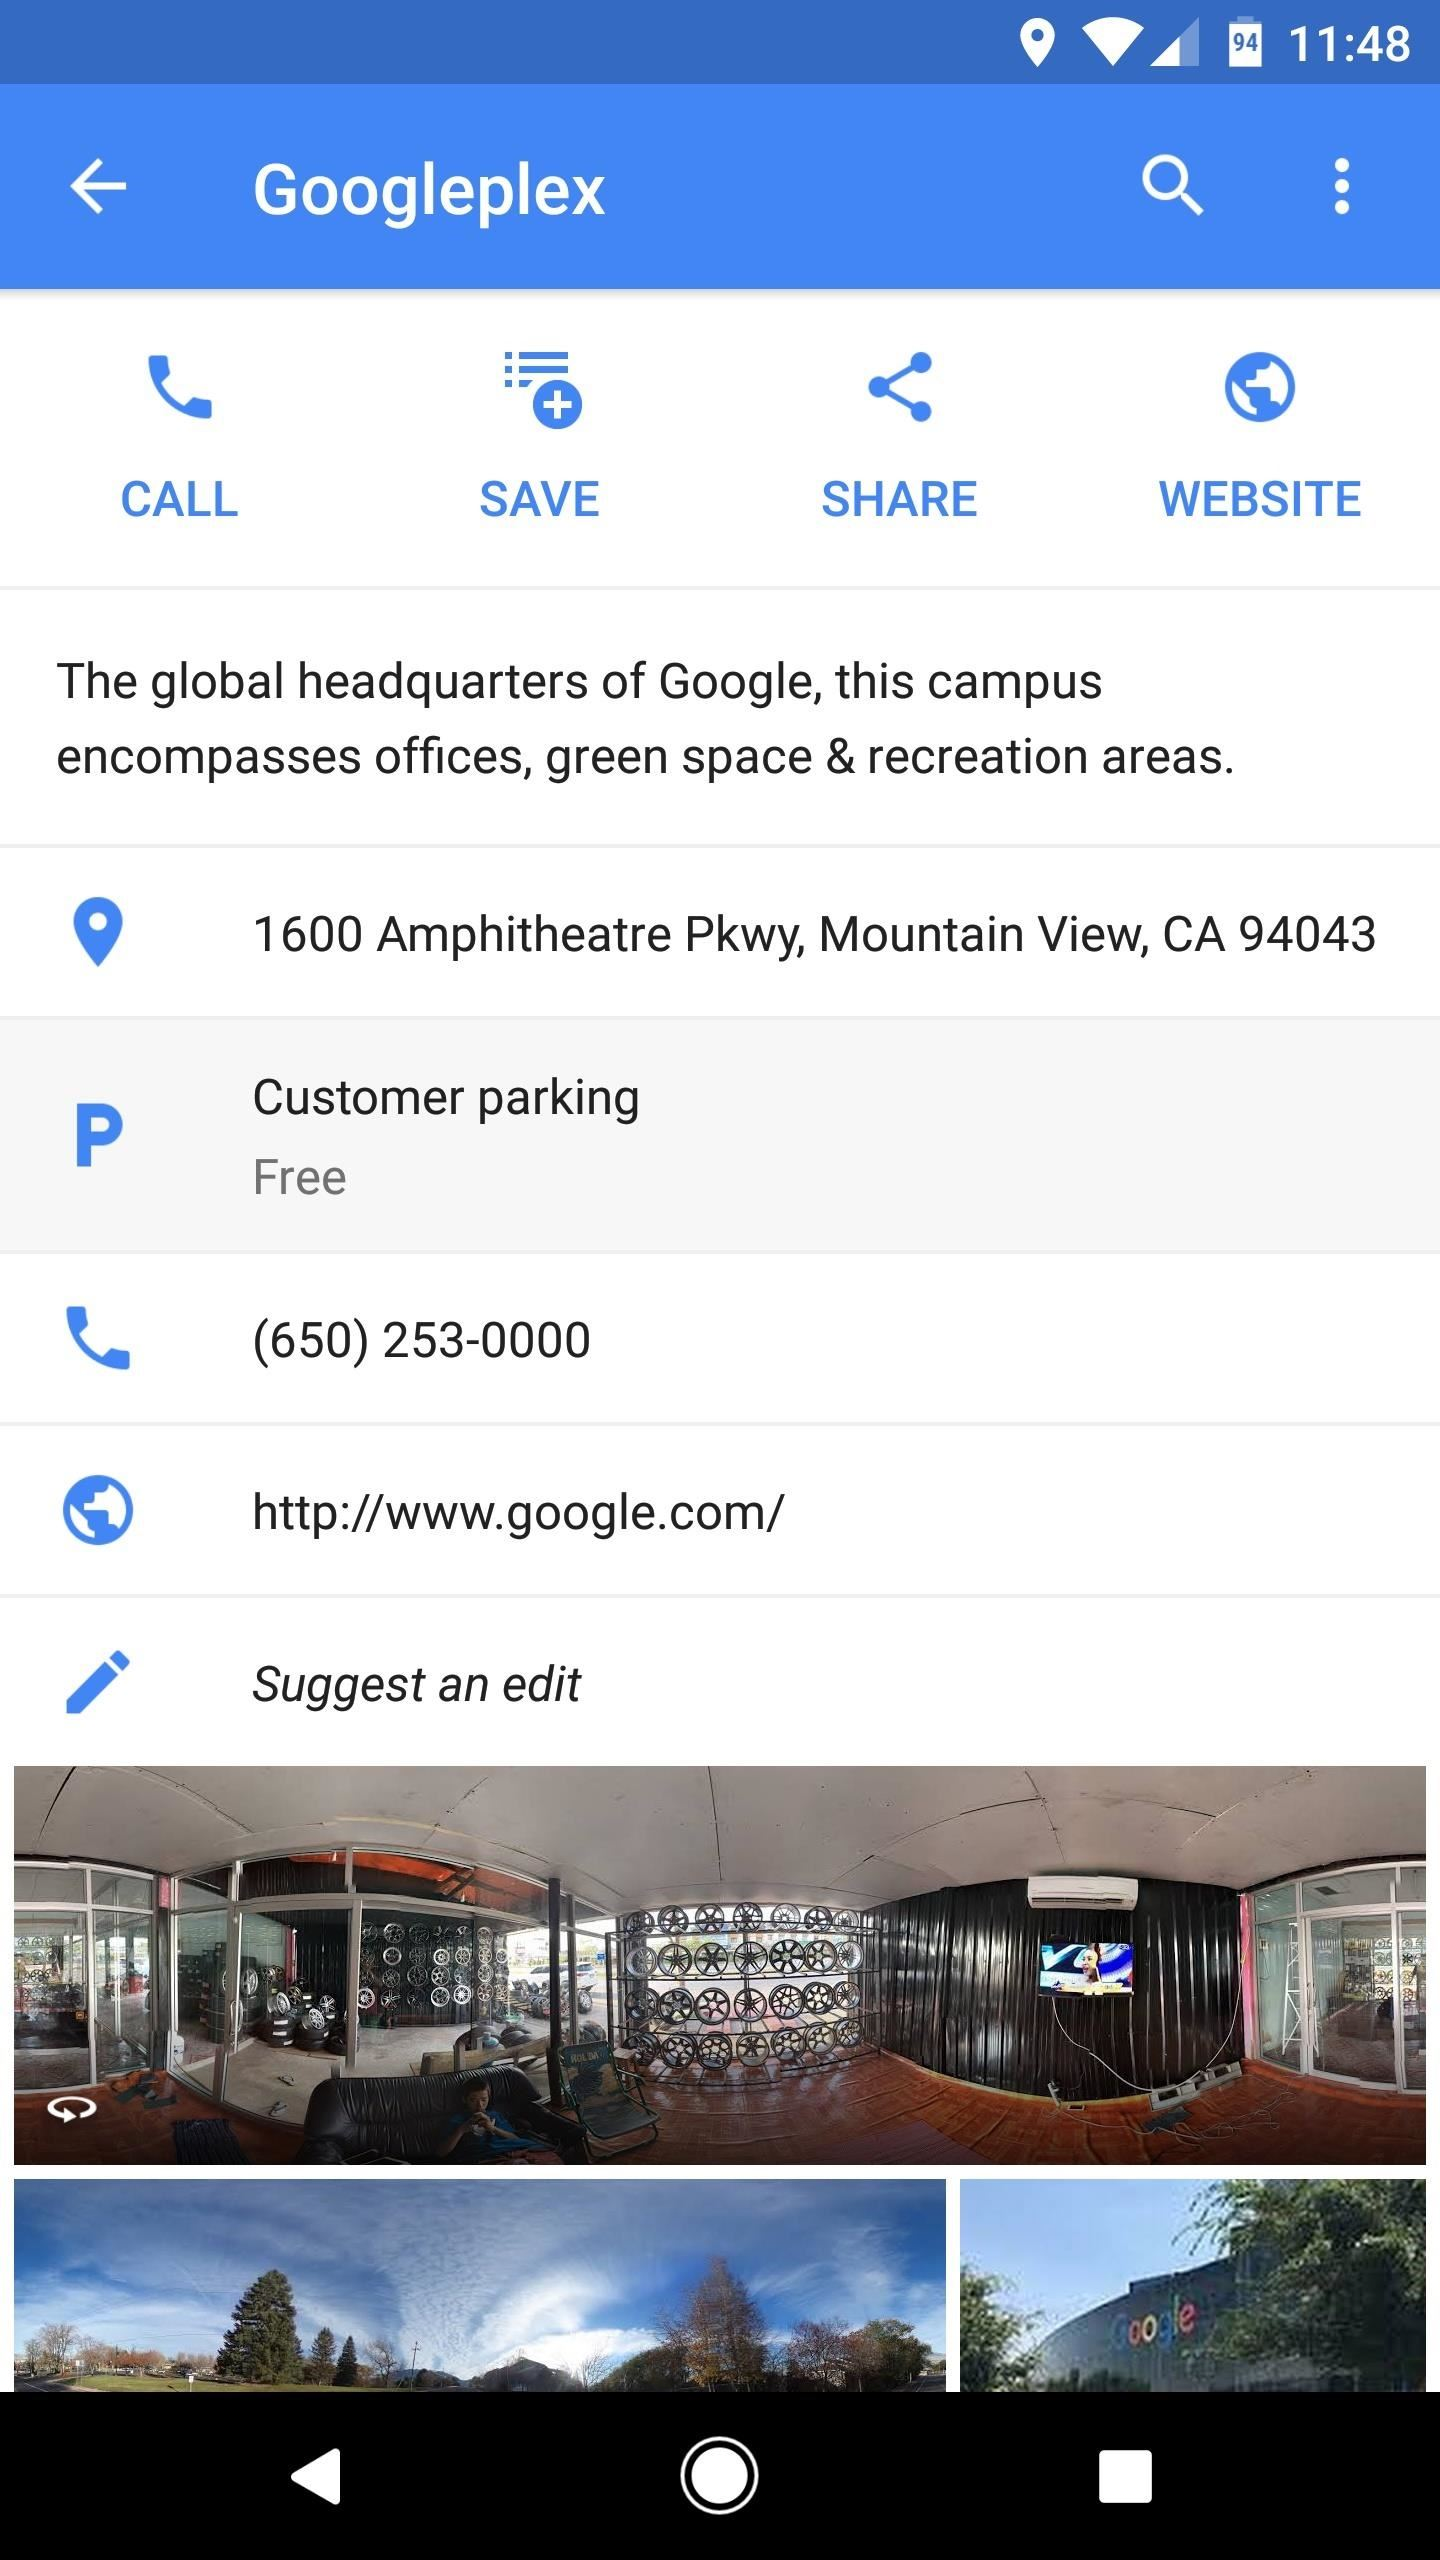 Google Maps Will Now Tell You if There's On-Site Parking at Your Destination